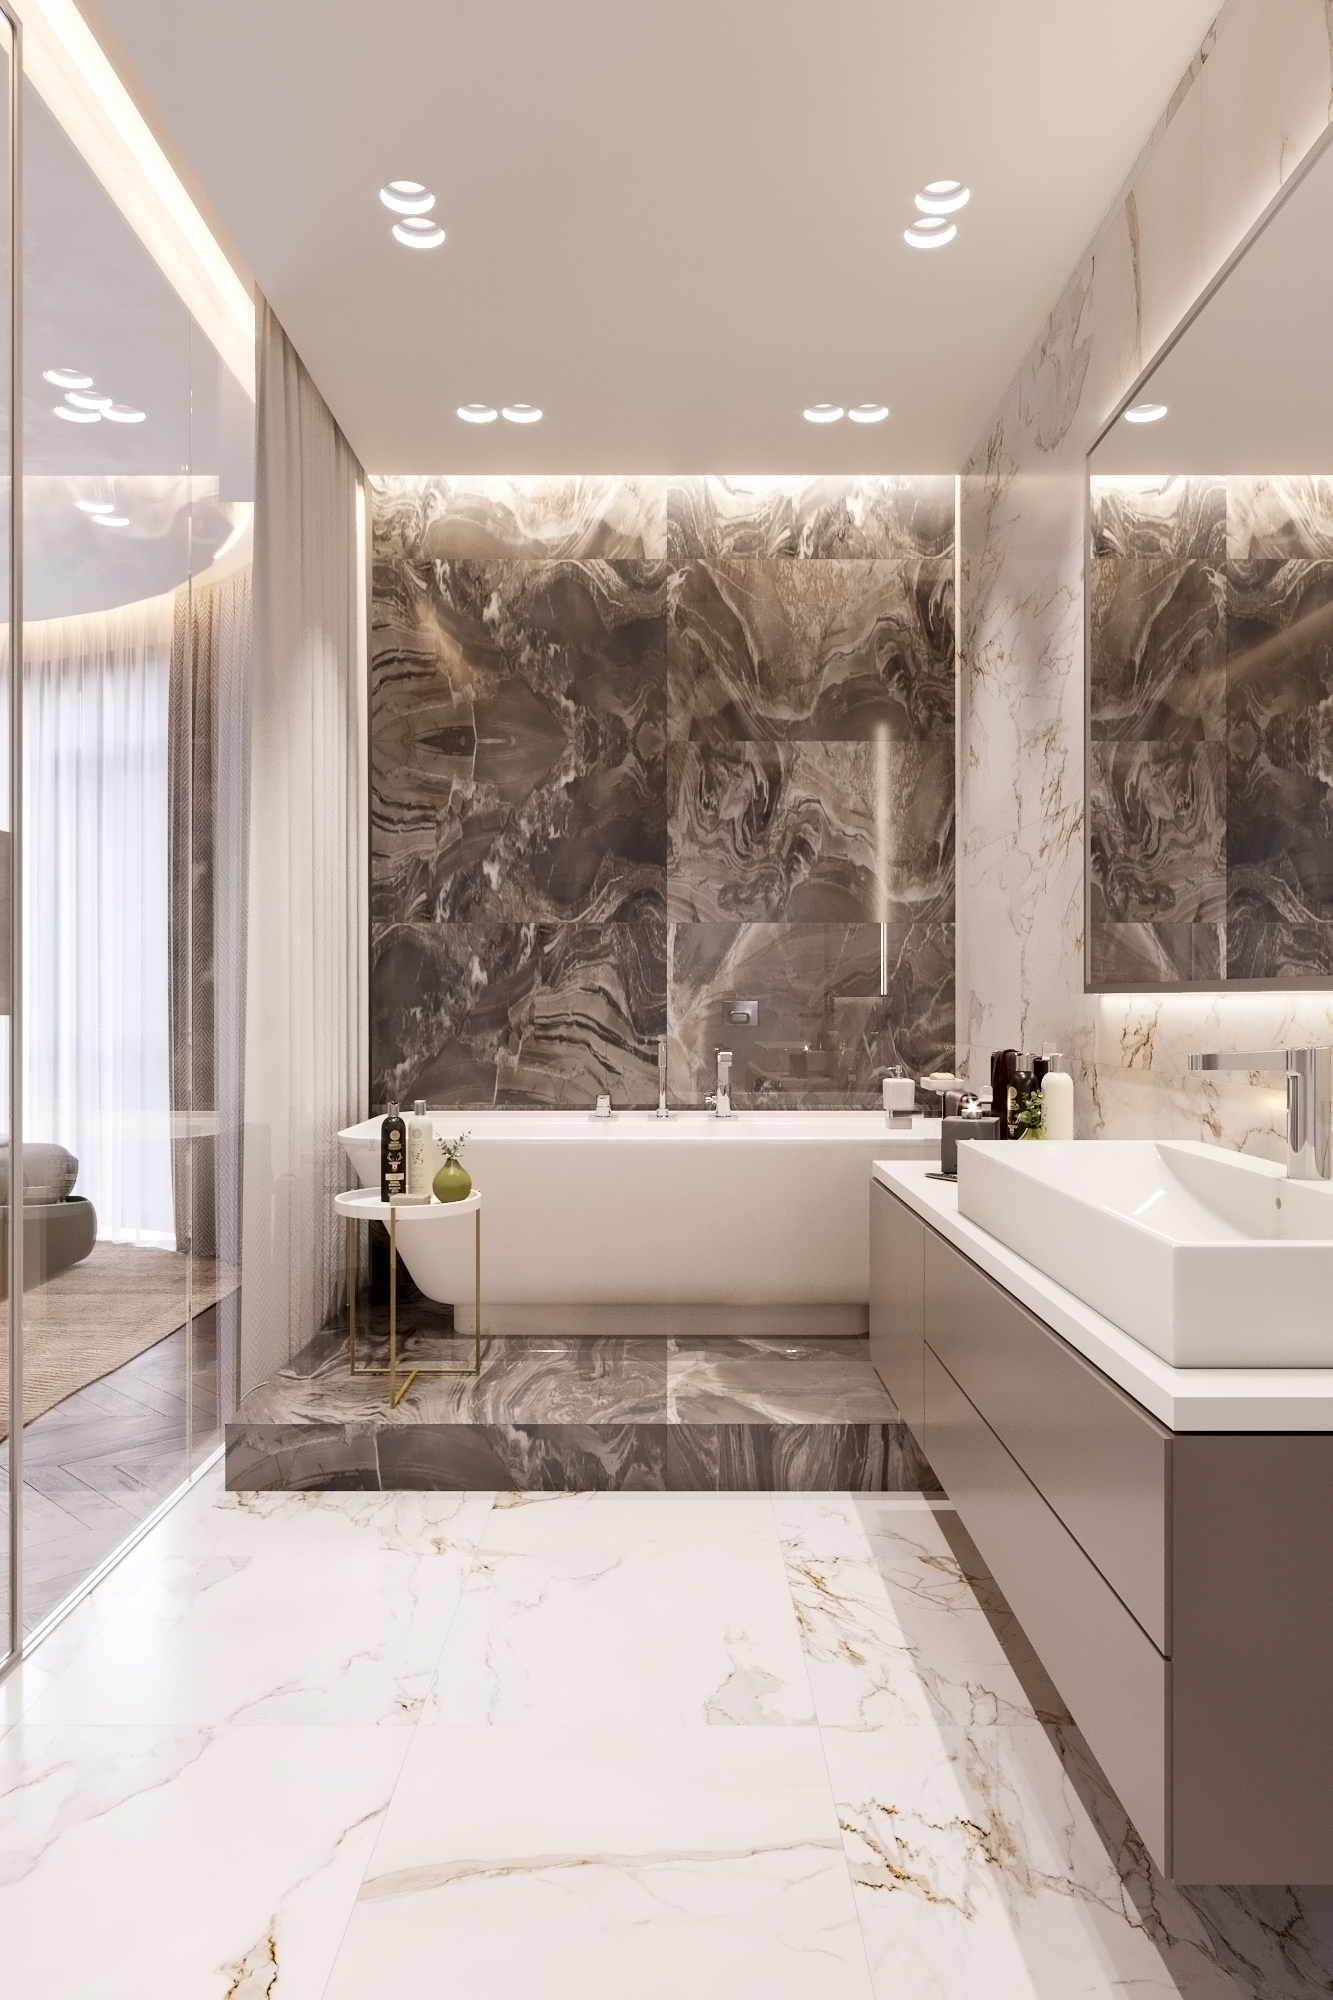 Working On A Bathroom Project We Can Help You With Some Marble Inspirations Disco Bathroom Inspiration Modern Bathroom Interior Design Bathroom Design Luxury